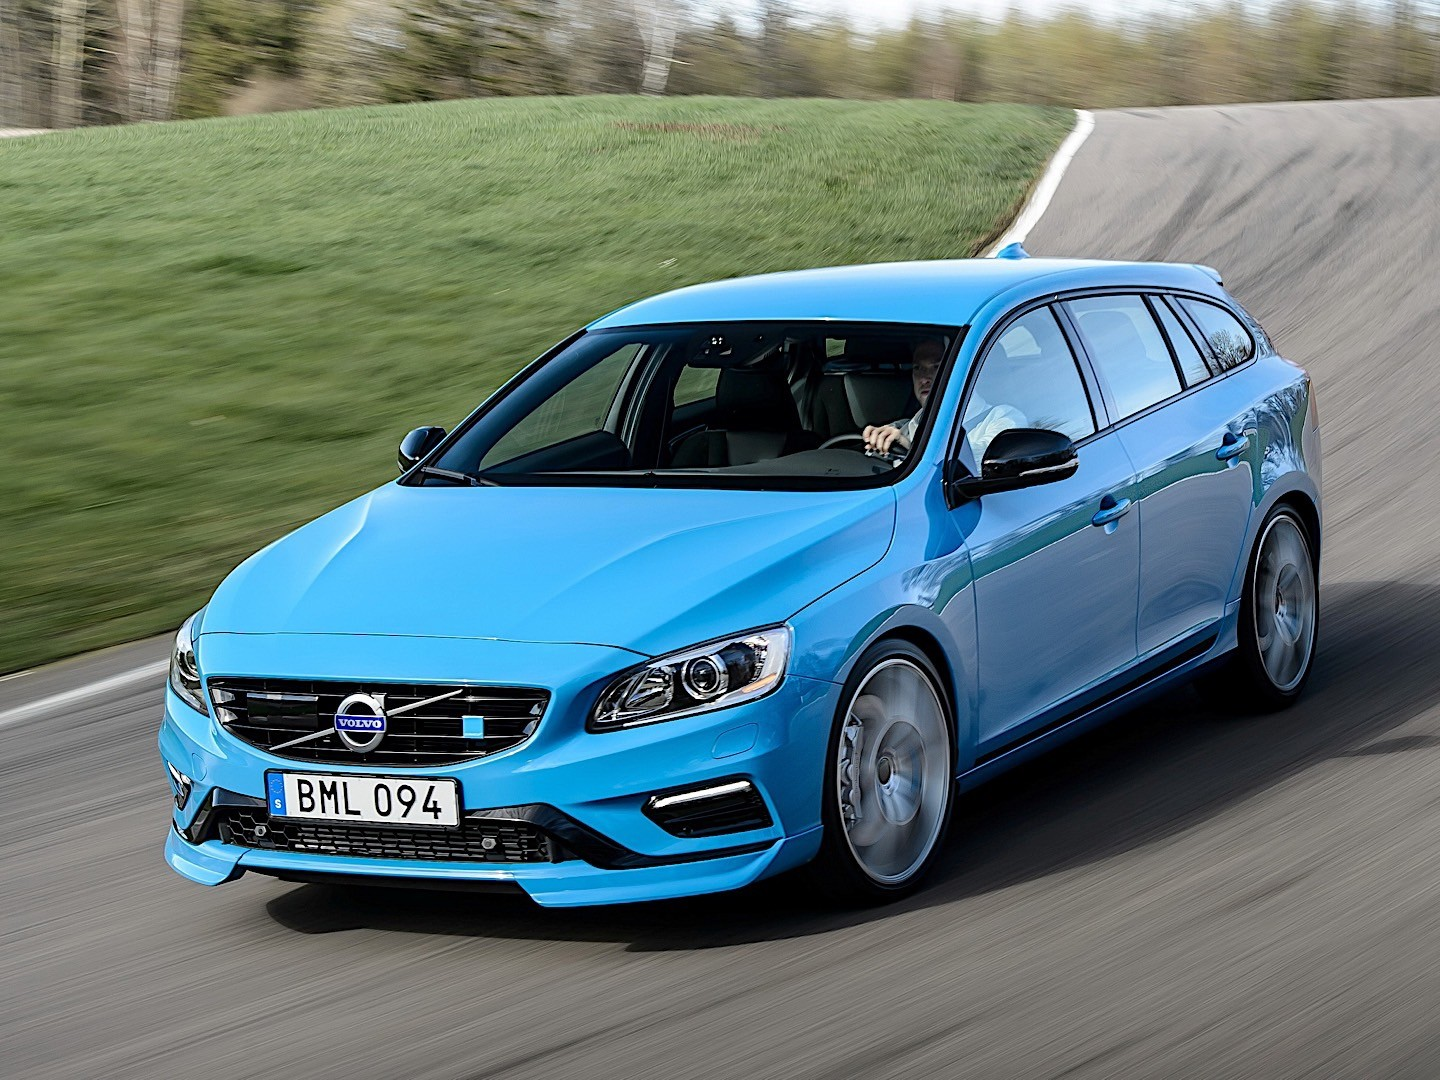 volvo v60 polestar specs photos 2014 2015 2016 2017. Black Bedroom Furniture Sets. Home Design Ideas